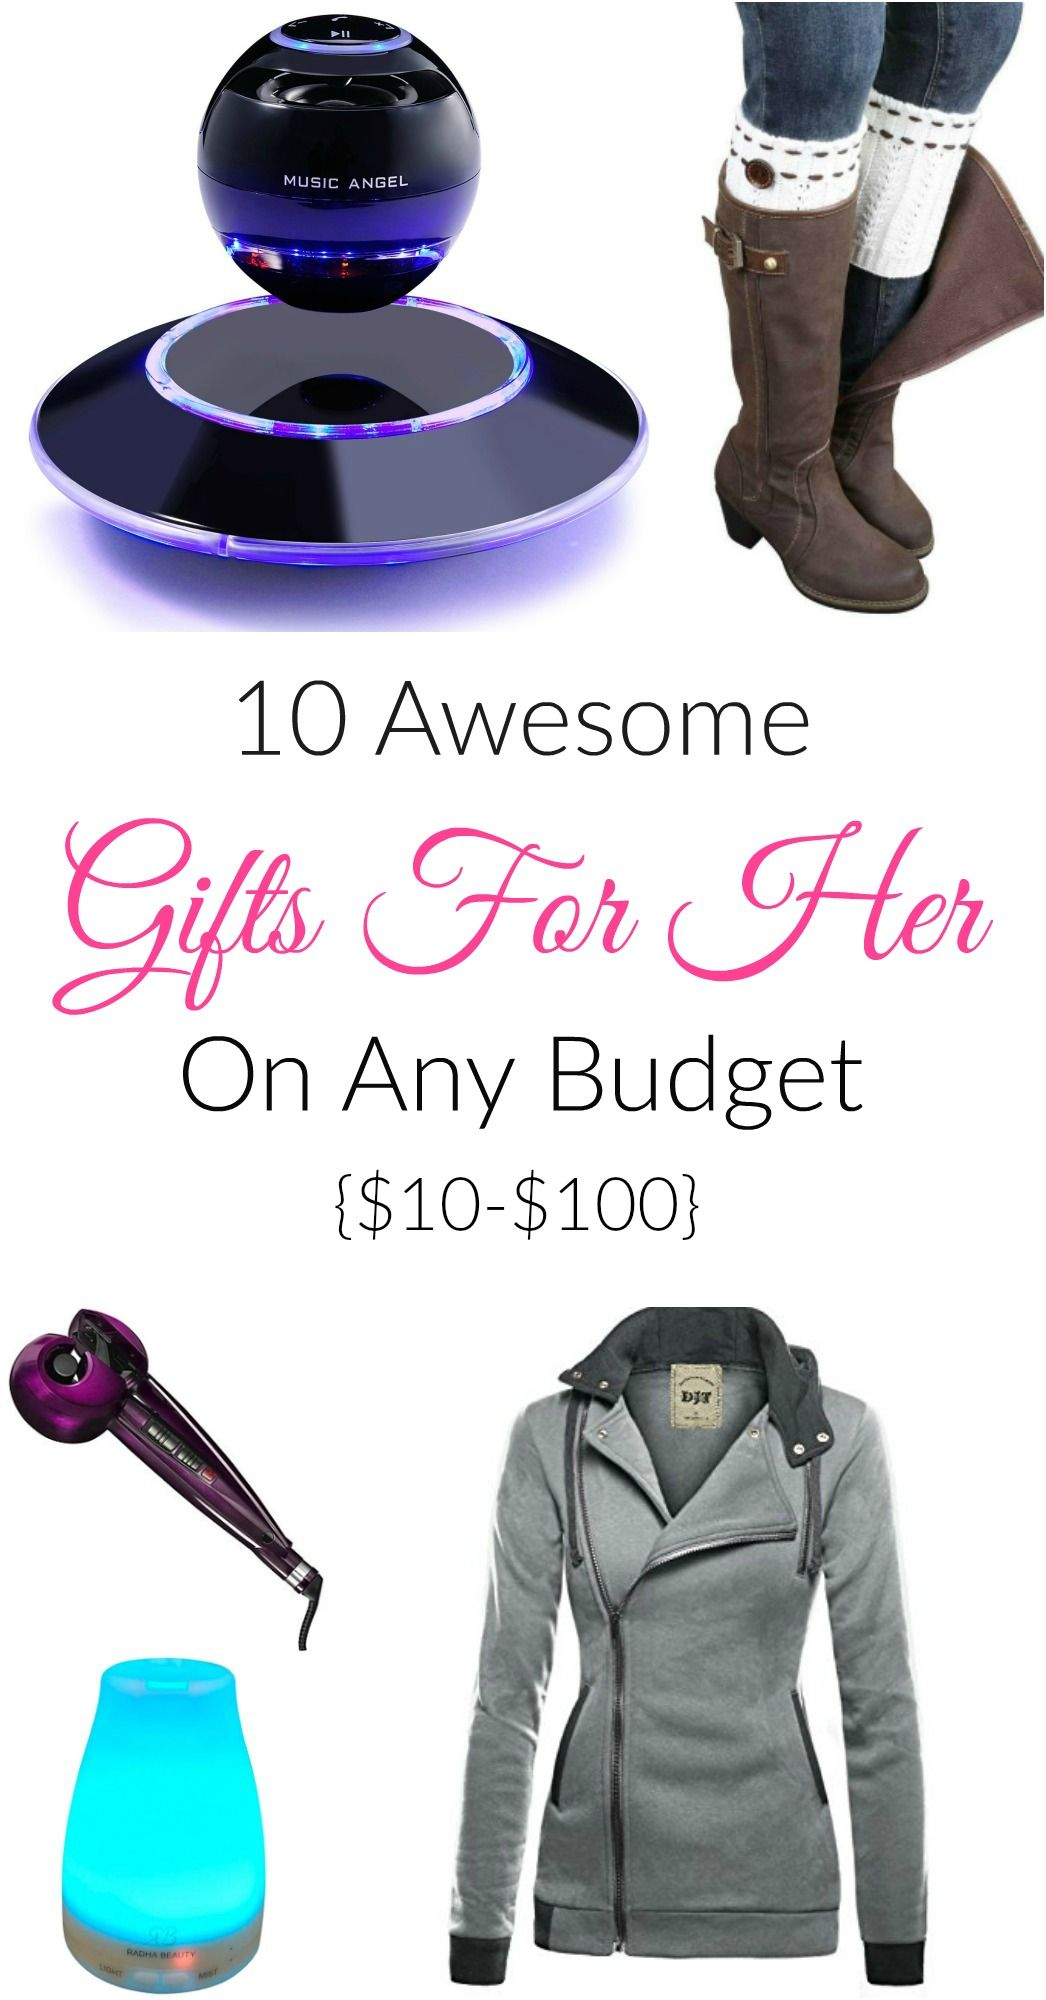 Wife christmas gifts under 100.00